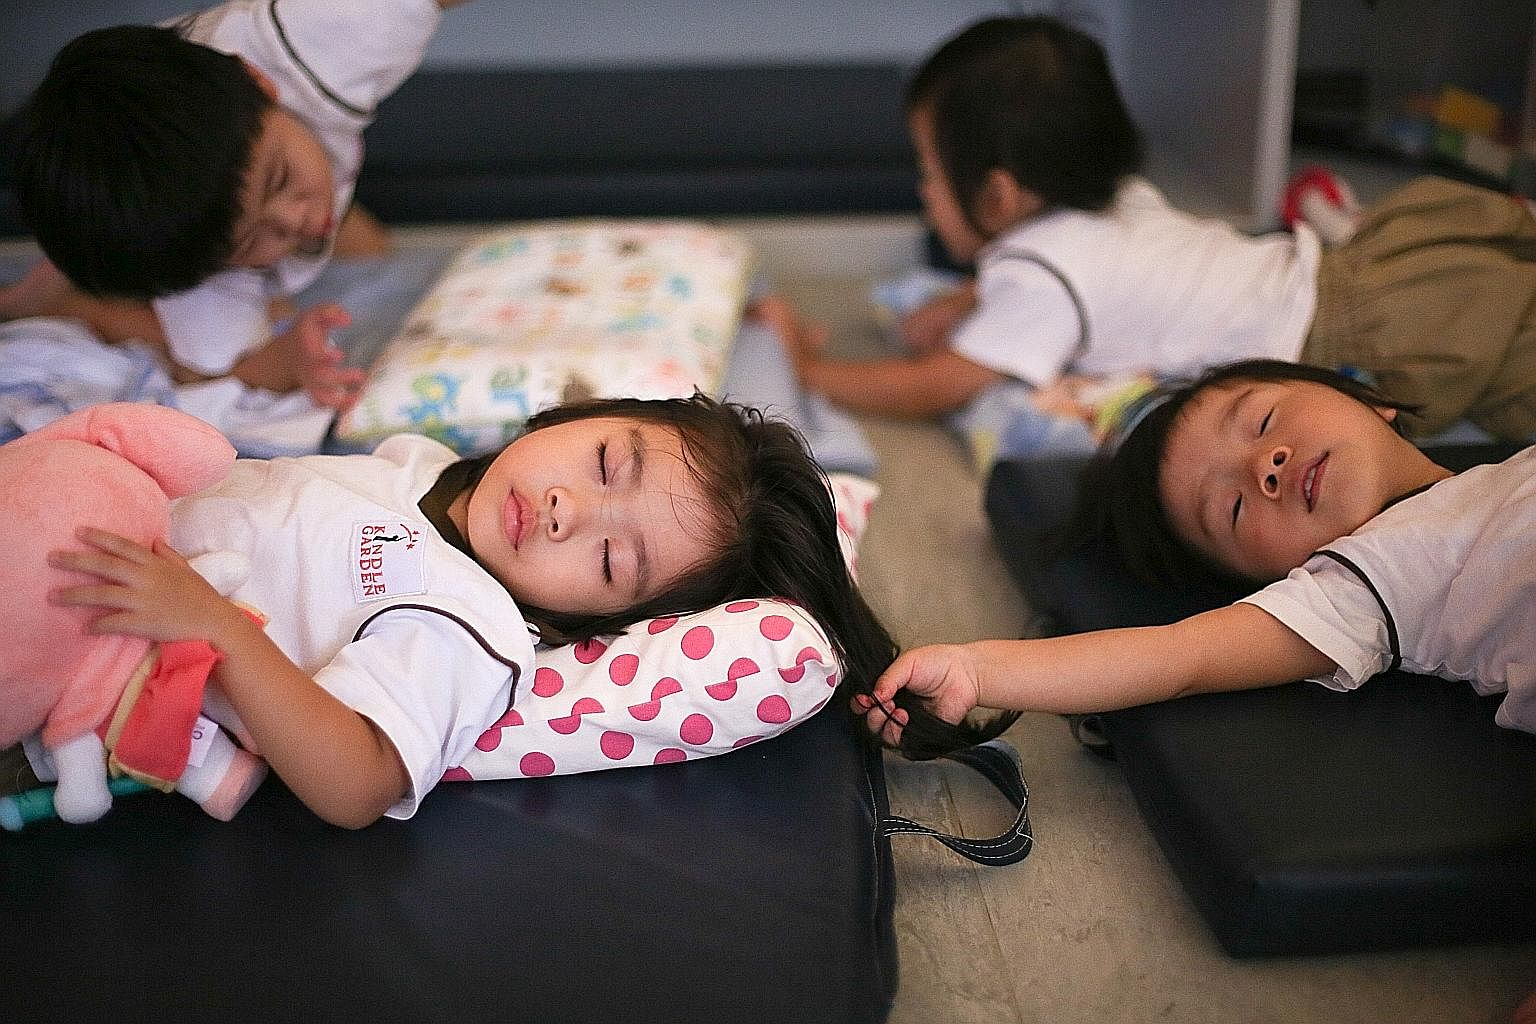 Nursery 1 classmates Oriana Yip (left) and Rhea Lim, both three, take a well-deserved nap after a day of activities and running around. To encourage independence, all the children lay out and put away their beds and sheets themselves. Those who strug